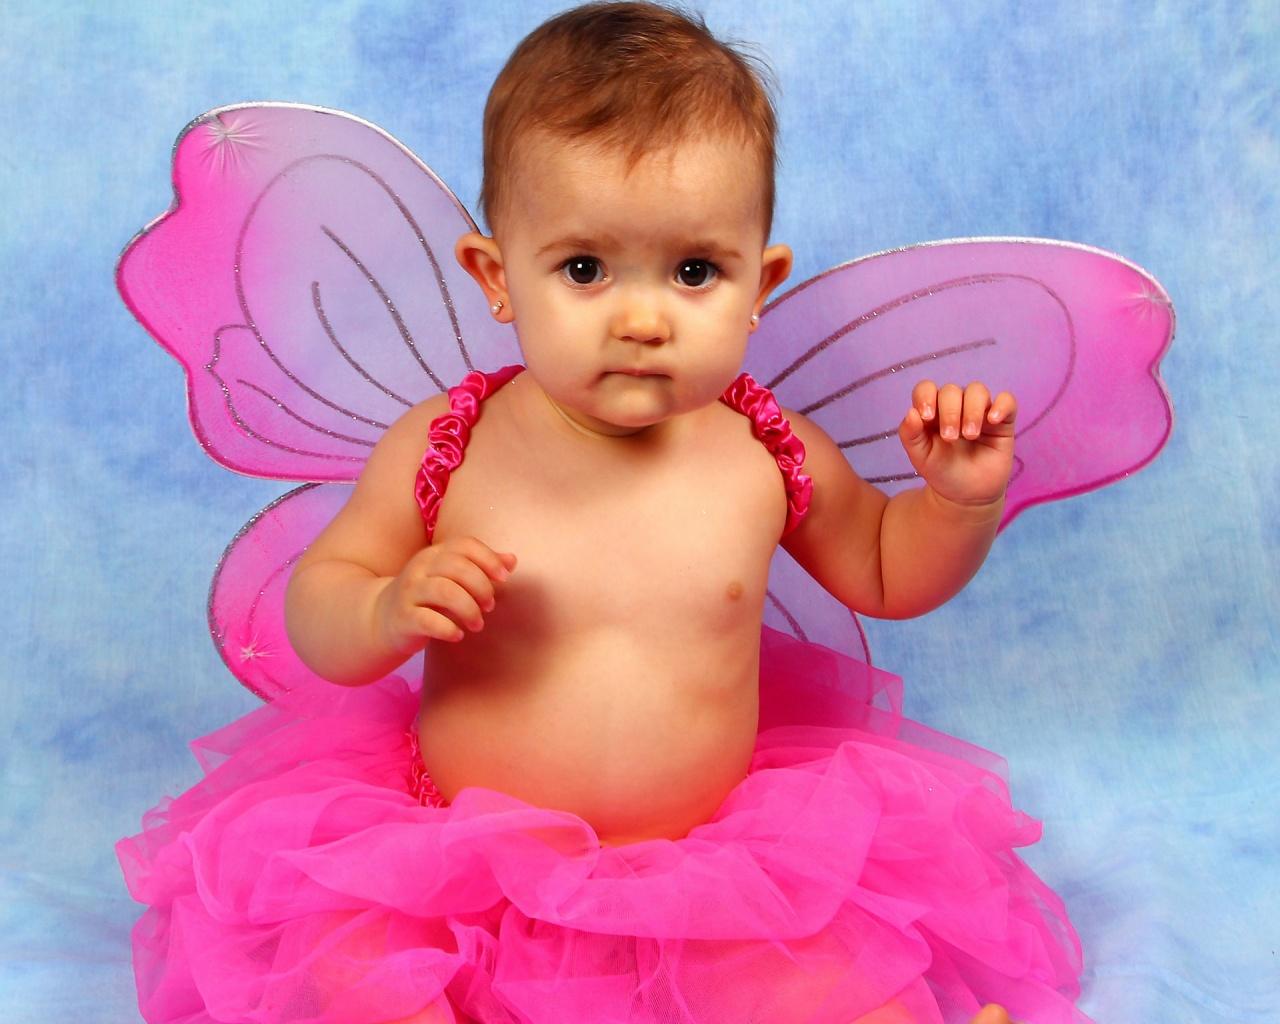 e4d731cfa11a Cute Baby Girl Wallpapers in jpg format for free download